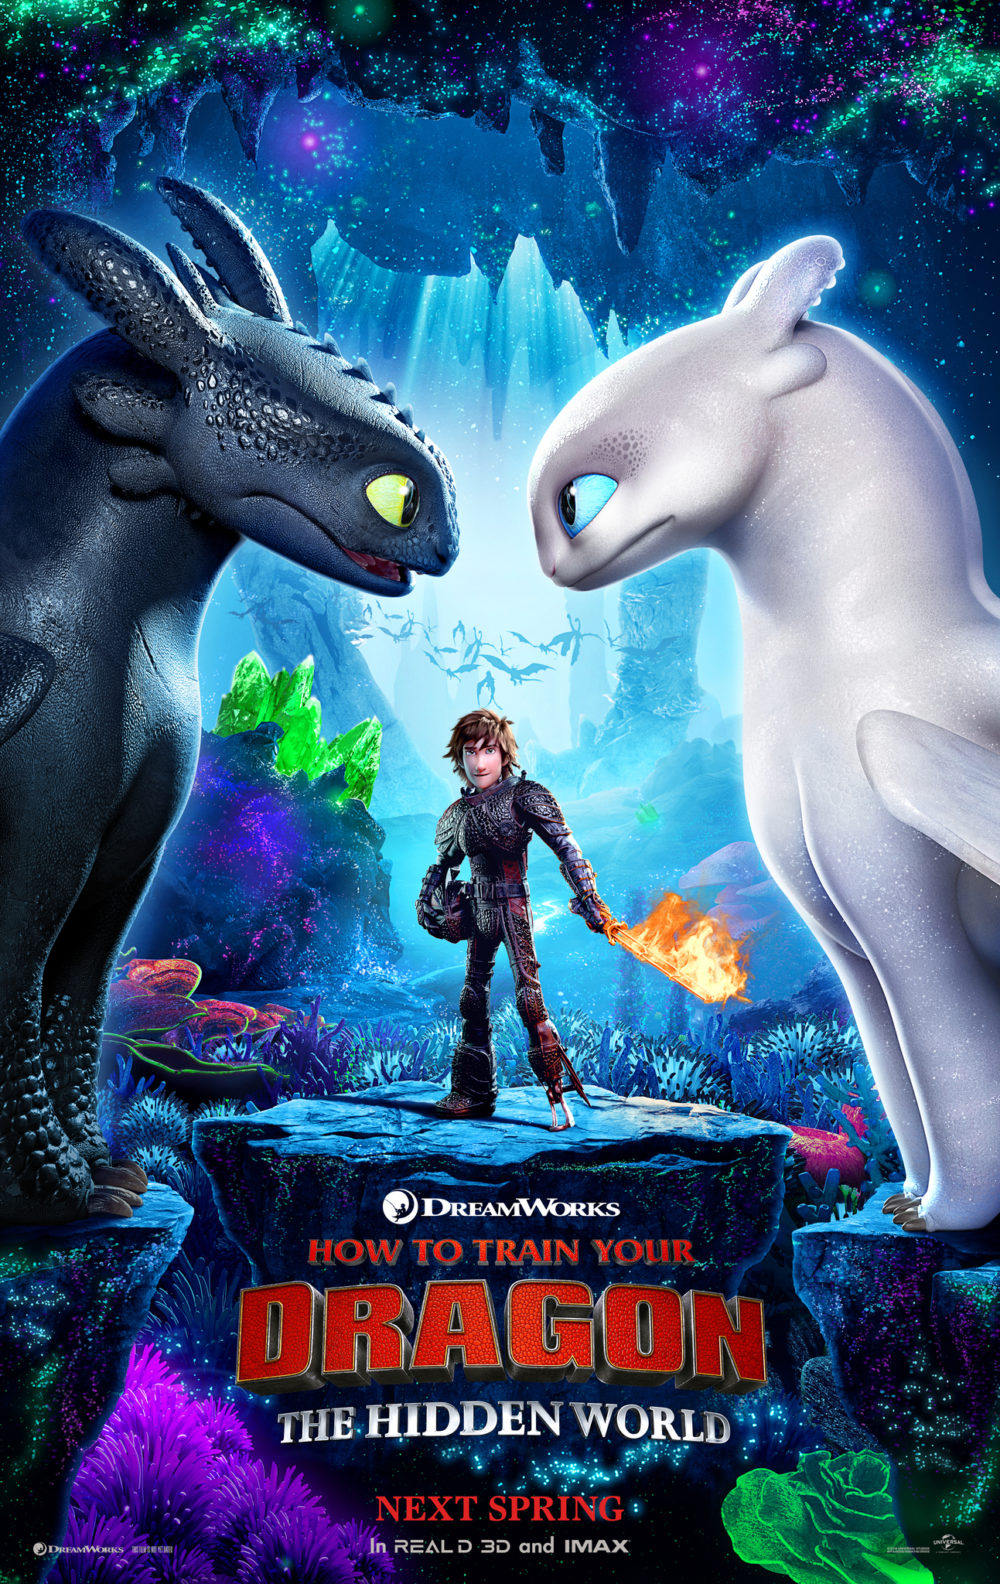 How To Train Your Dragon Free Movie Lockport Palace Theater